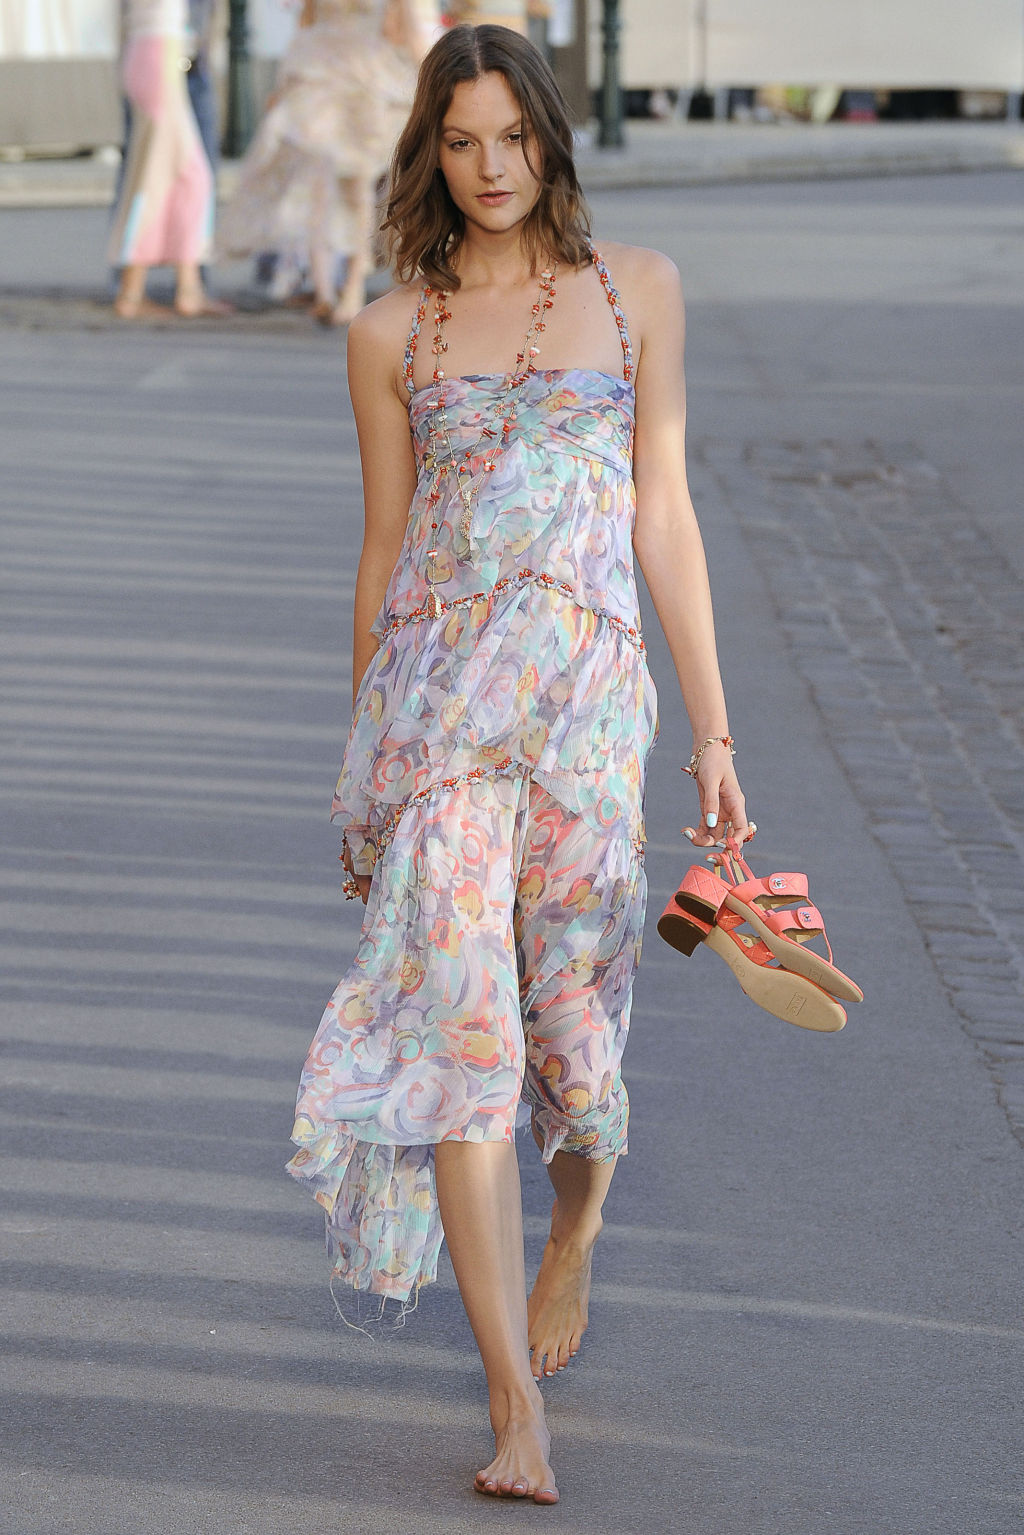 2011 chanel cruise runway collection hey